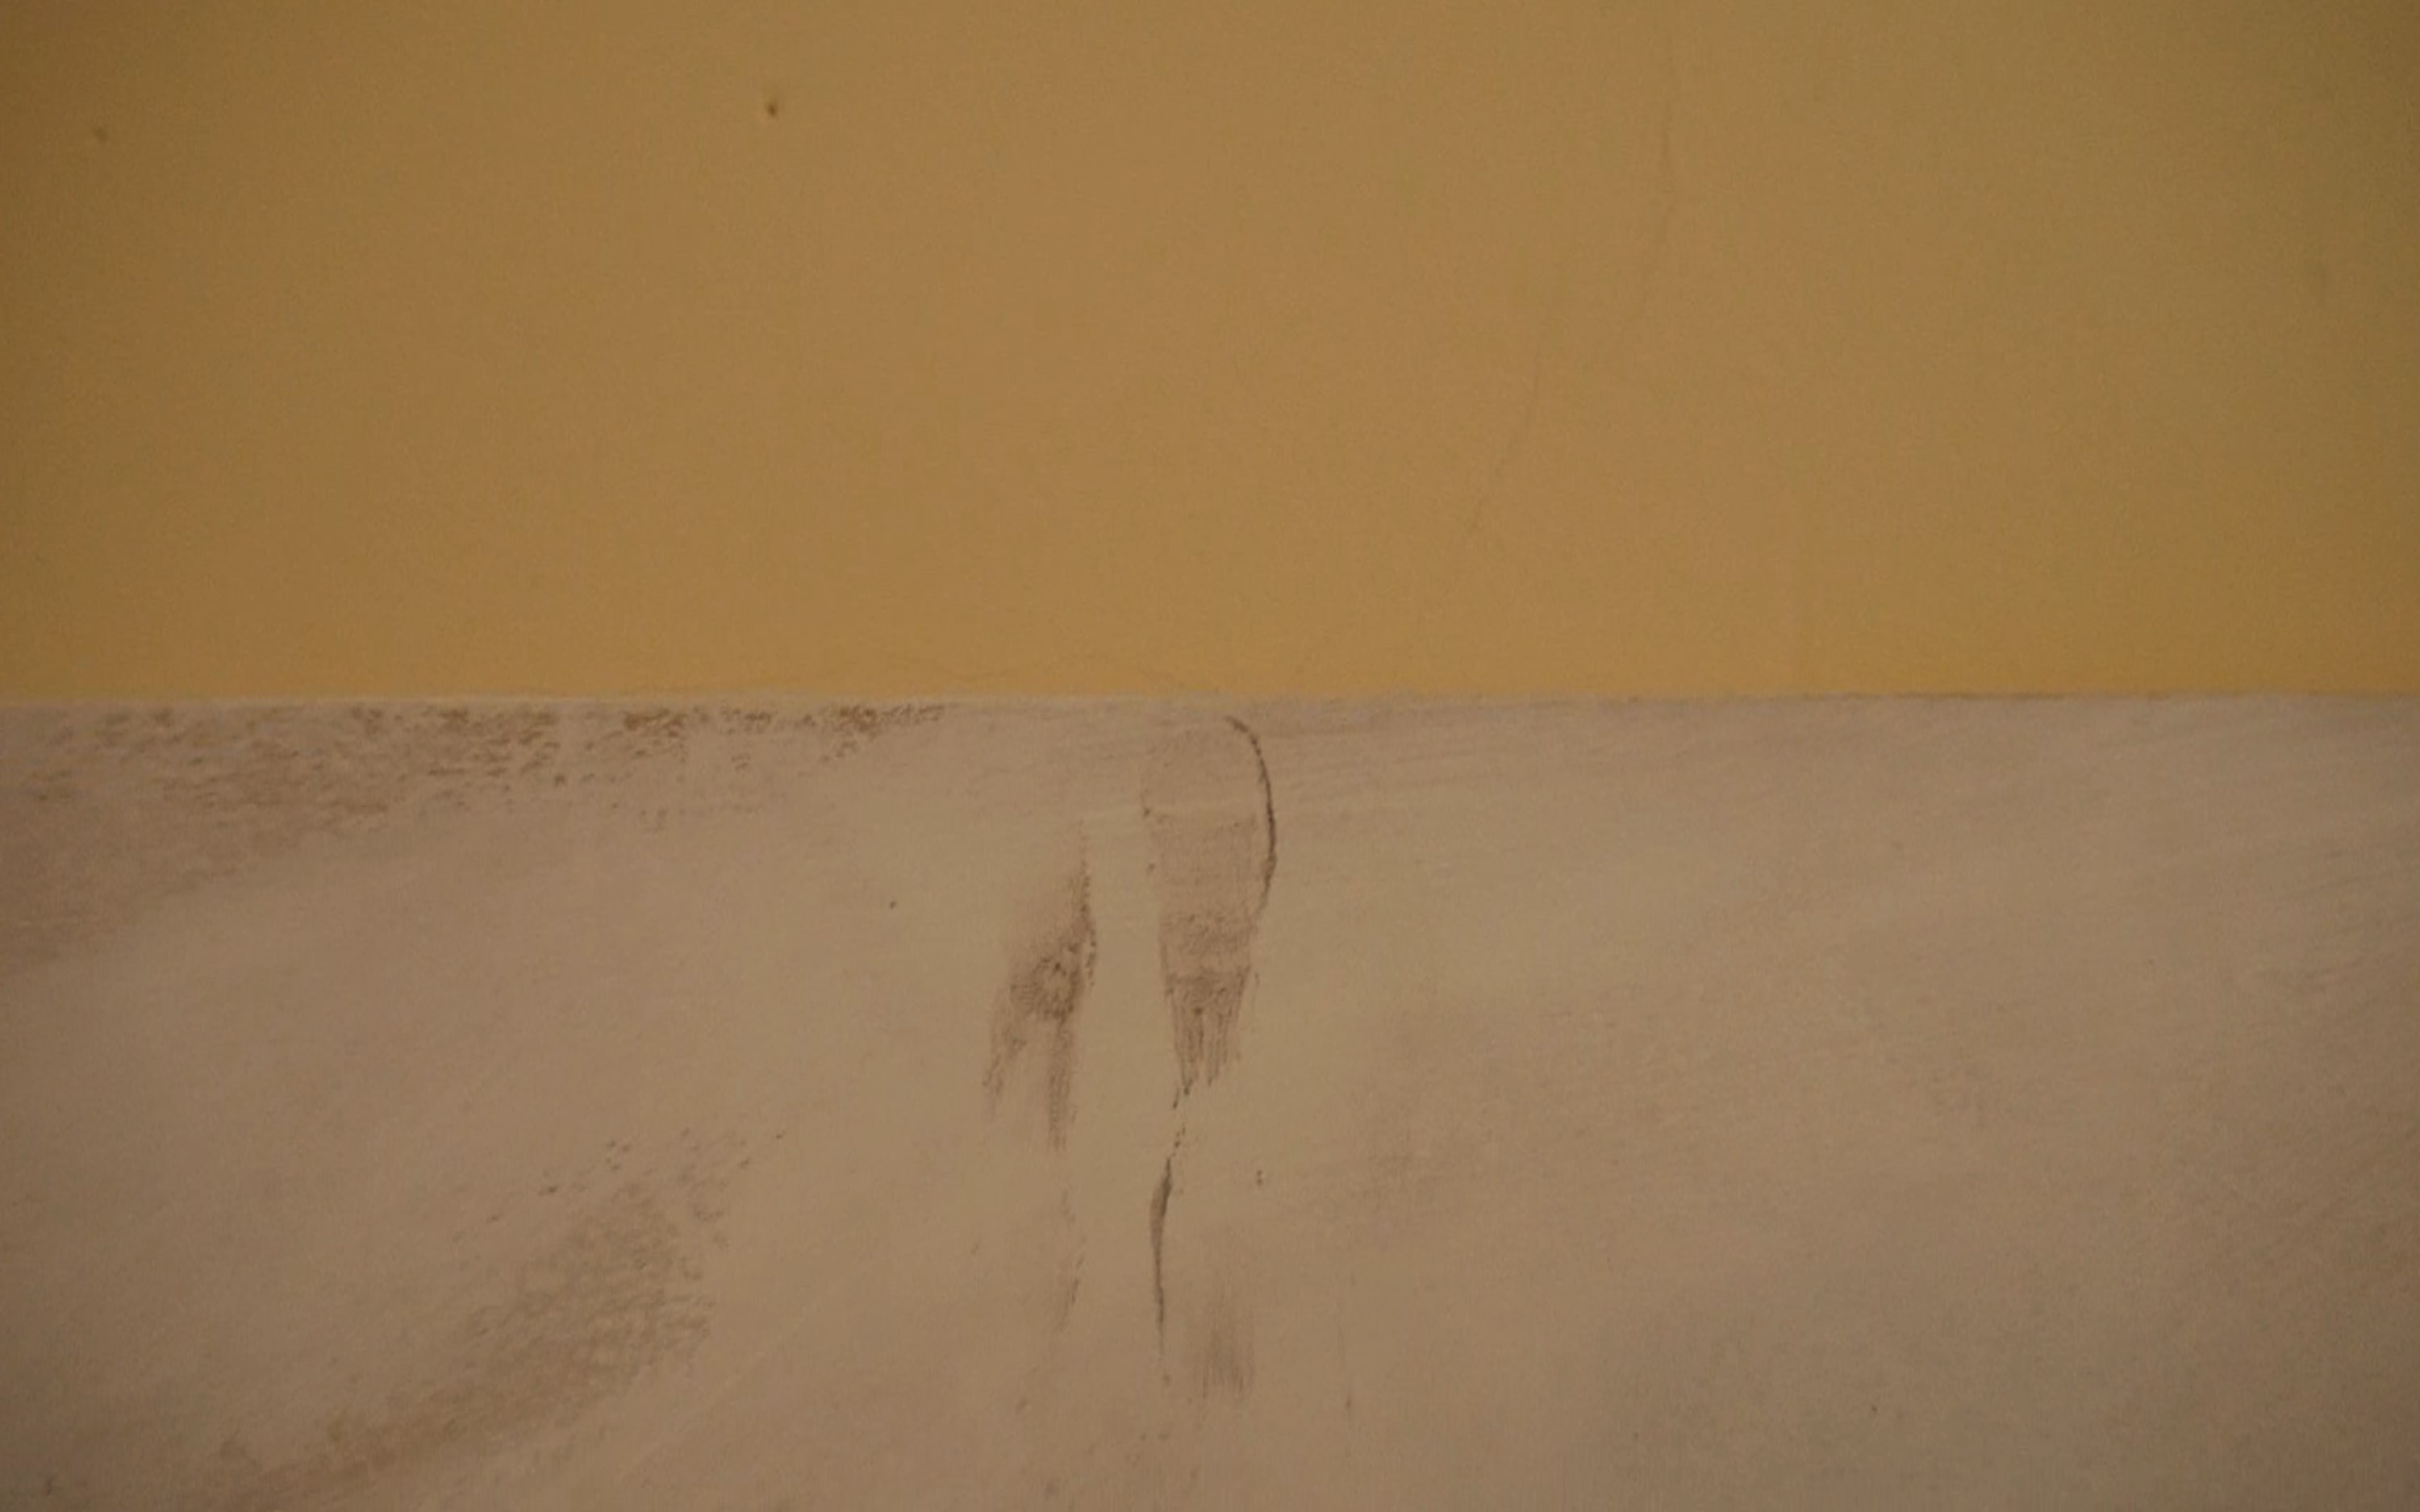 At the top edge of the painting there is a smear of deodorant and smudged pencil, which has made two fingerprints.